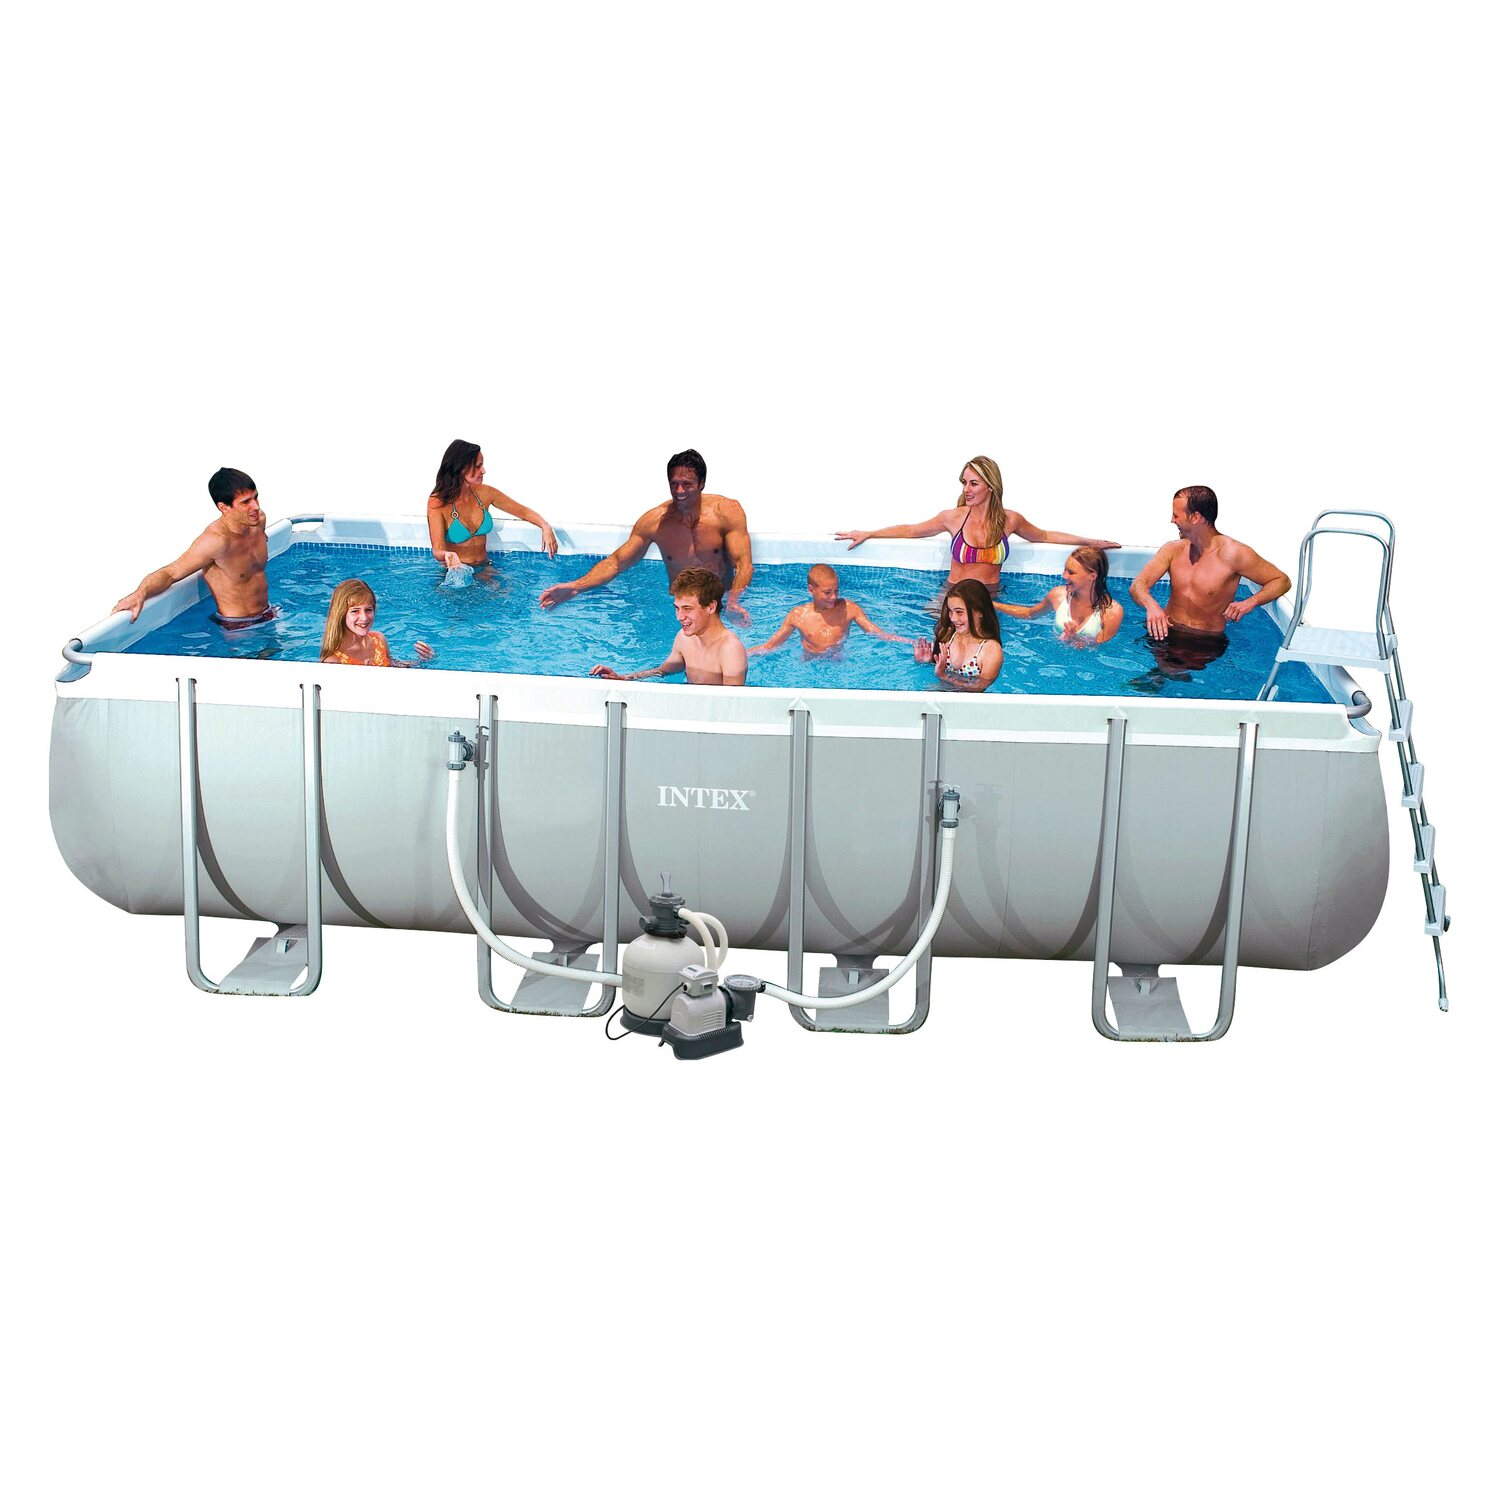 Ultra quadra i frame pool set 549 cm x 274 cm x 132 cm for Badepool obi